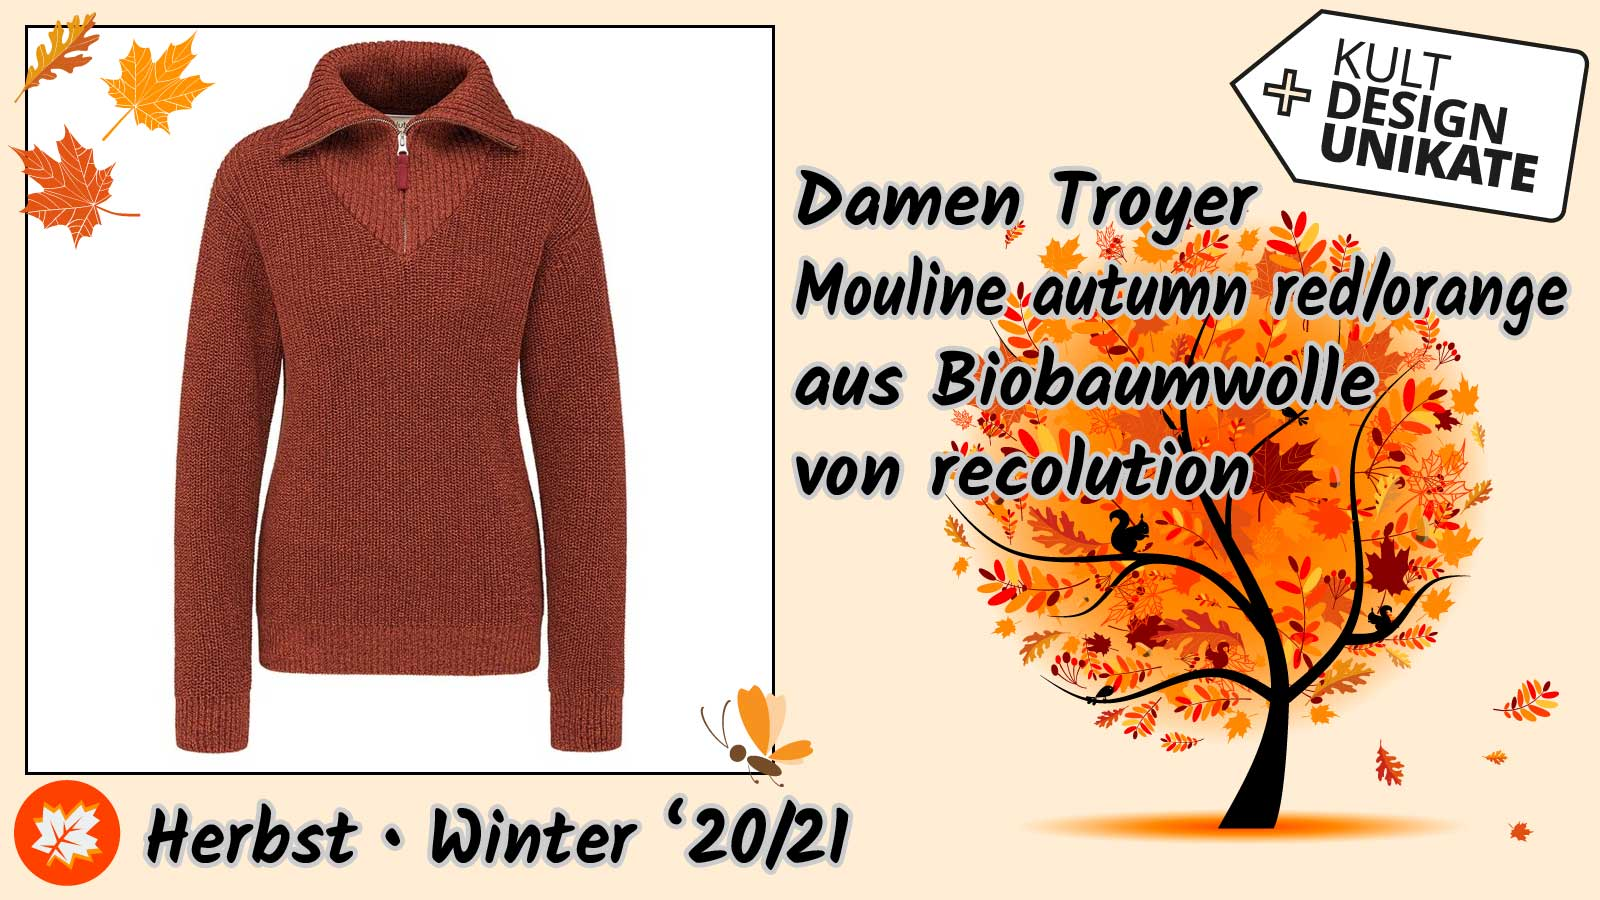 recolution-Damen-Troyer-Mouline-autumn-red-orange